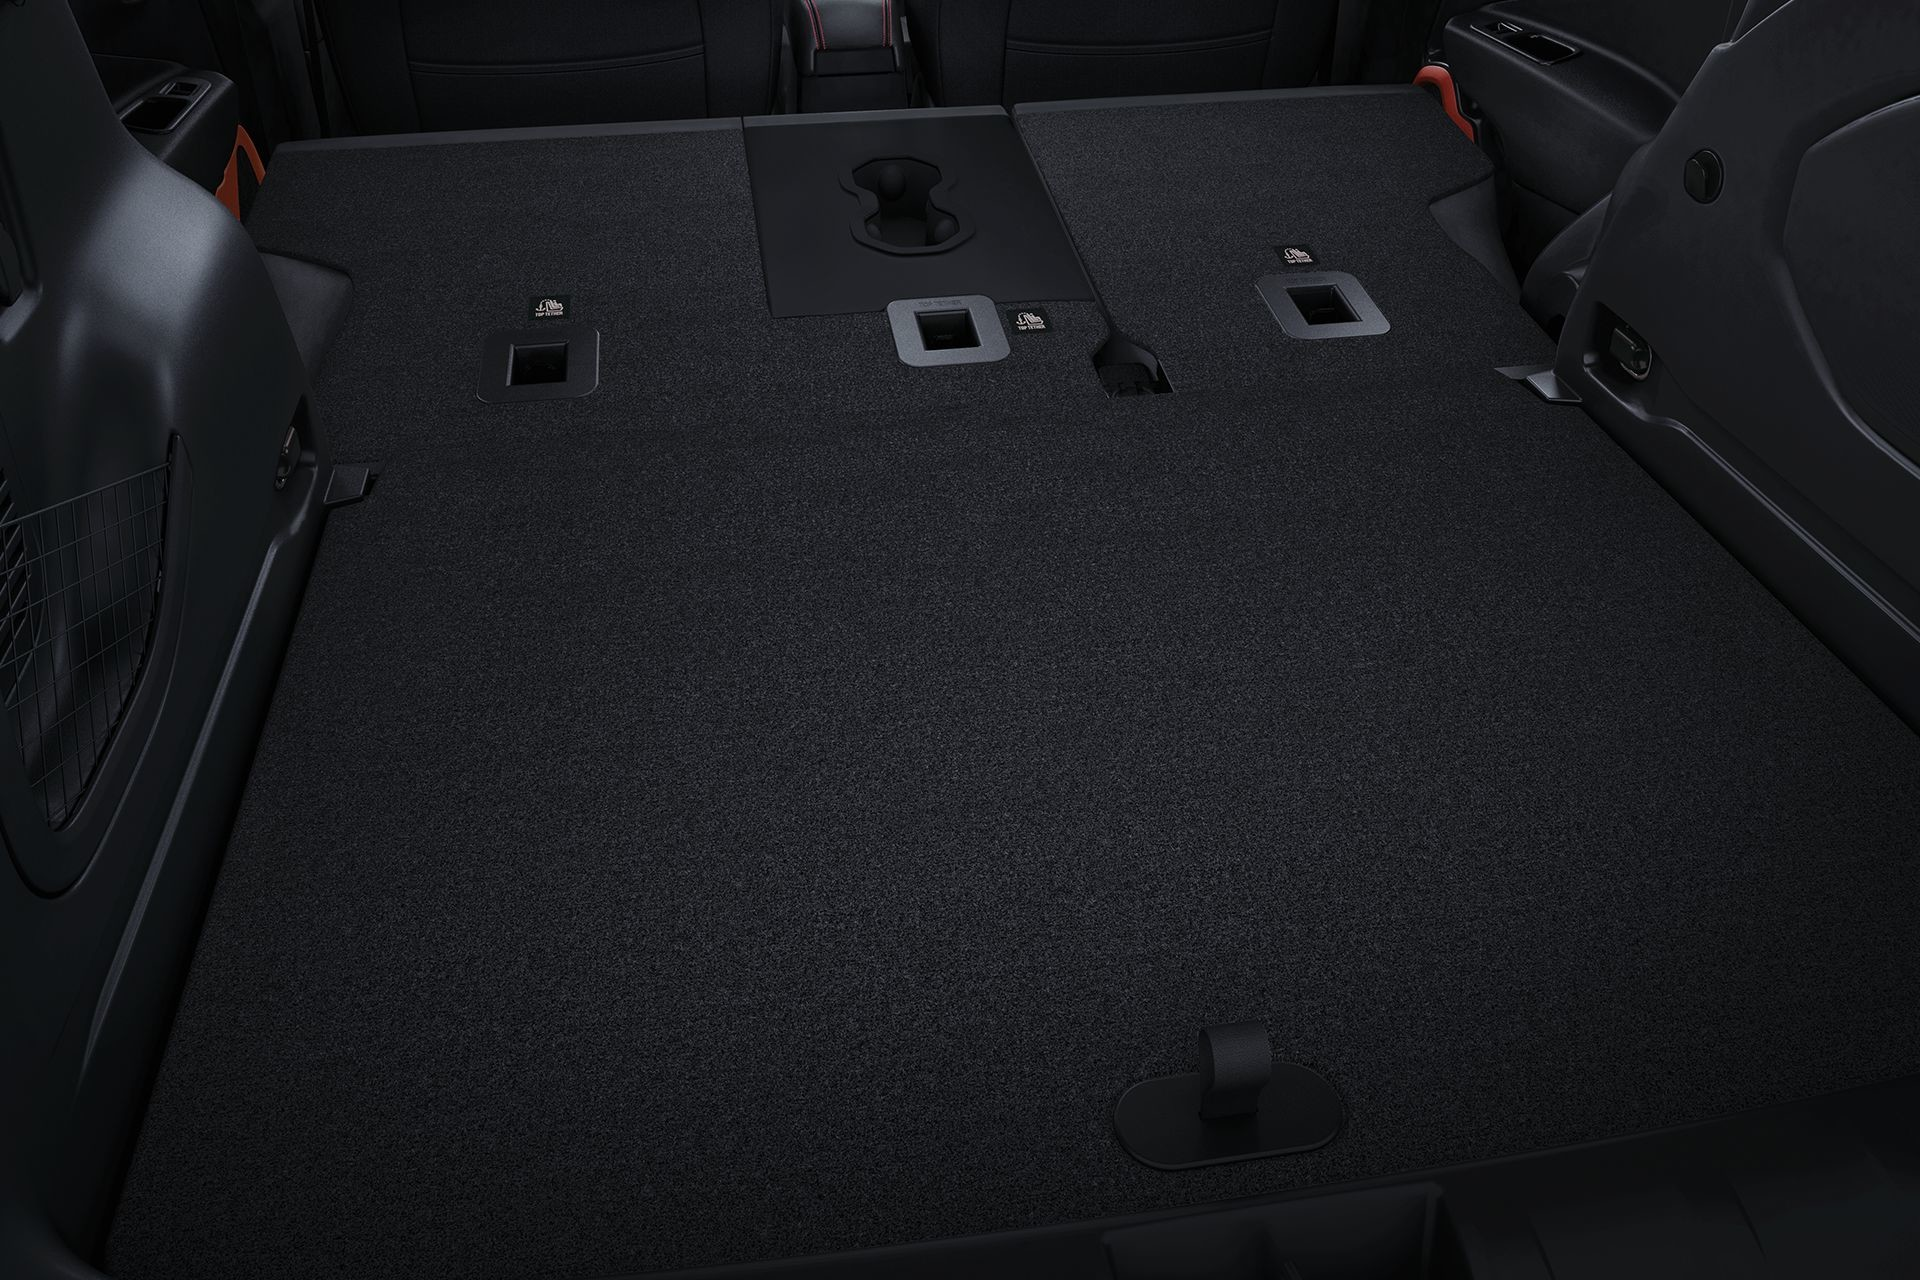 2018 Jeep Renegade interior cargo space with split folding rear seats